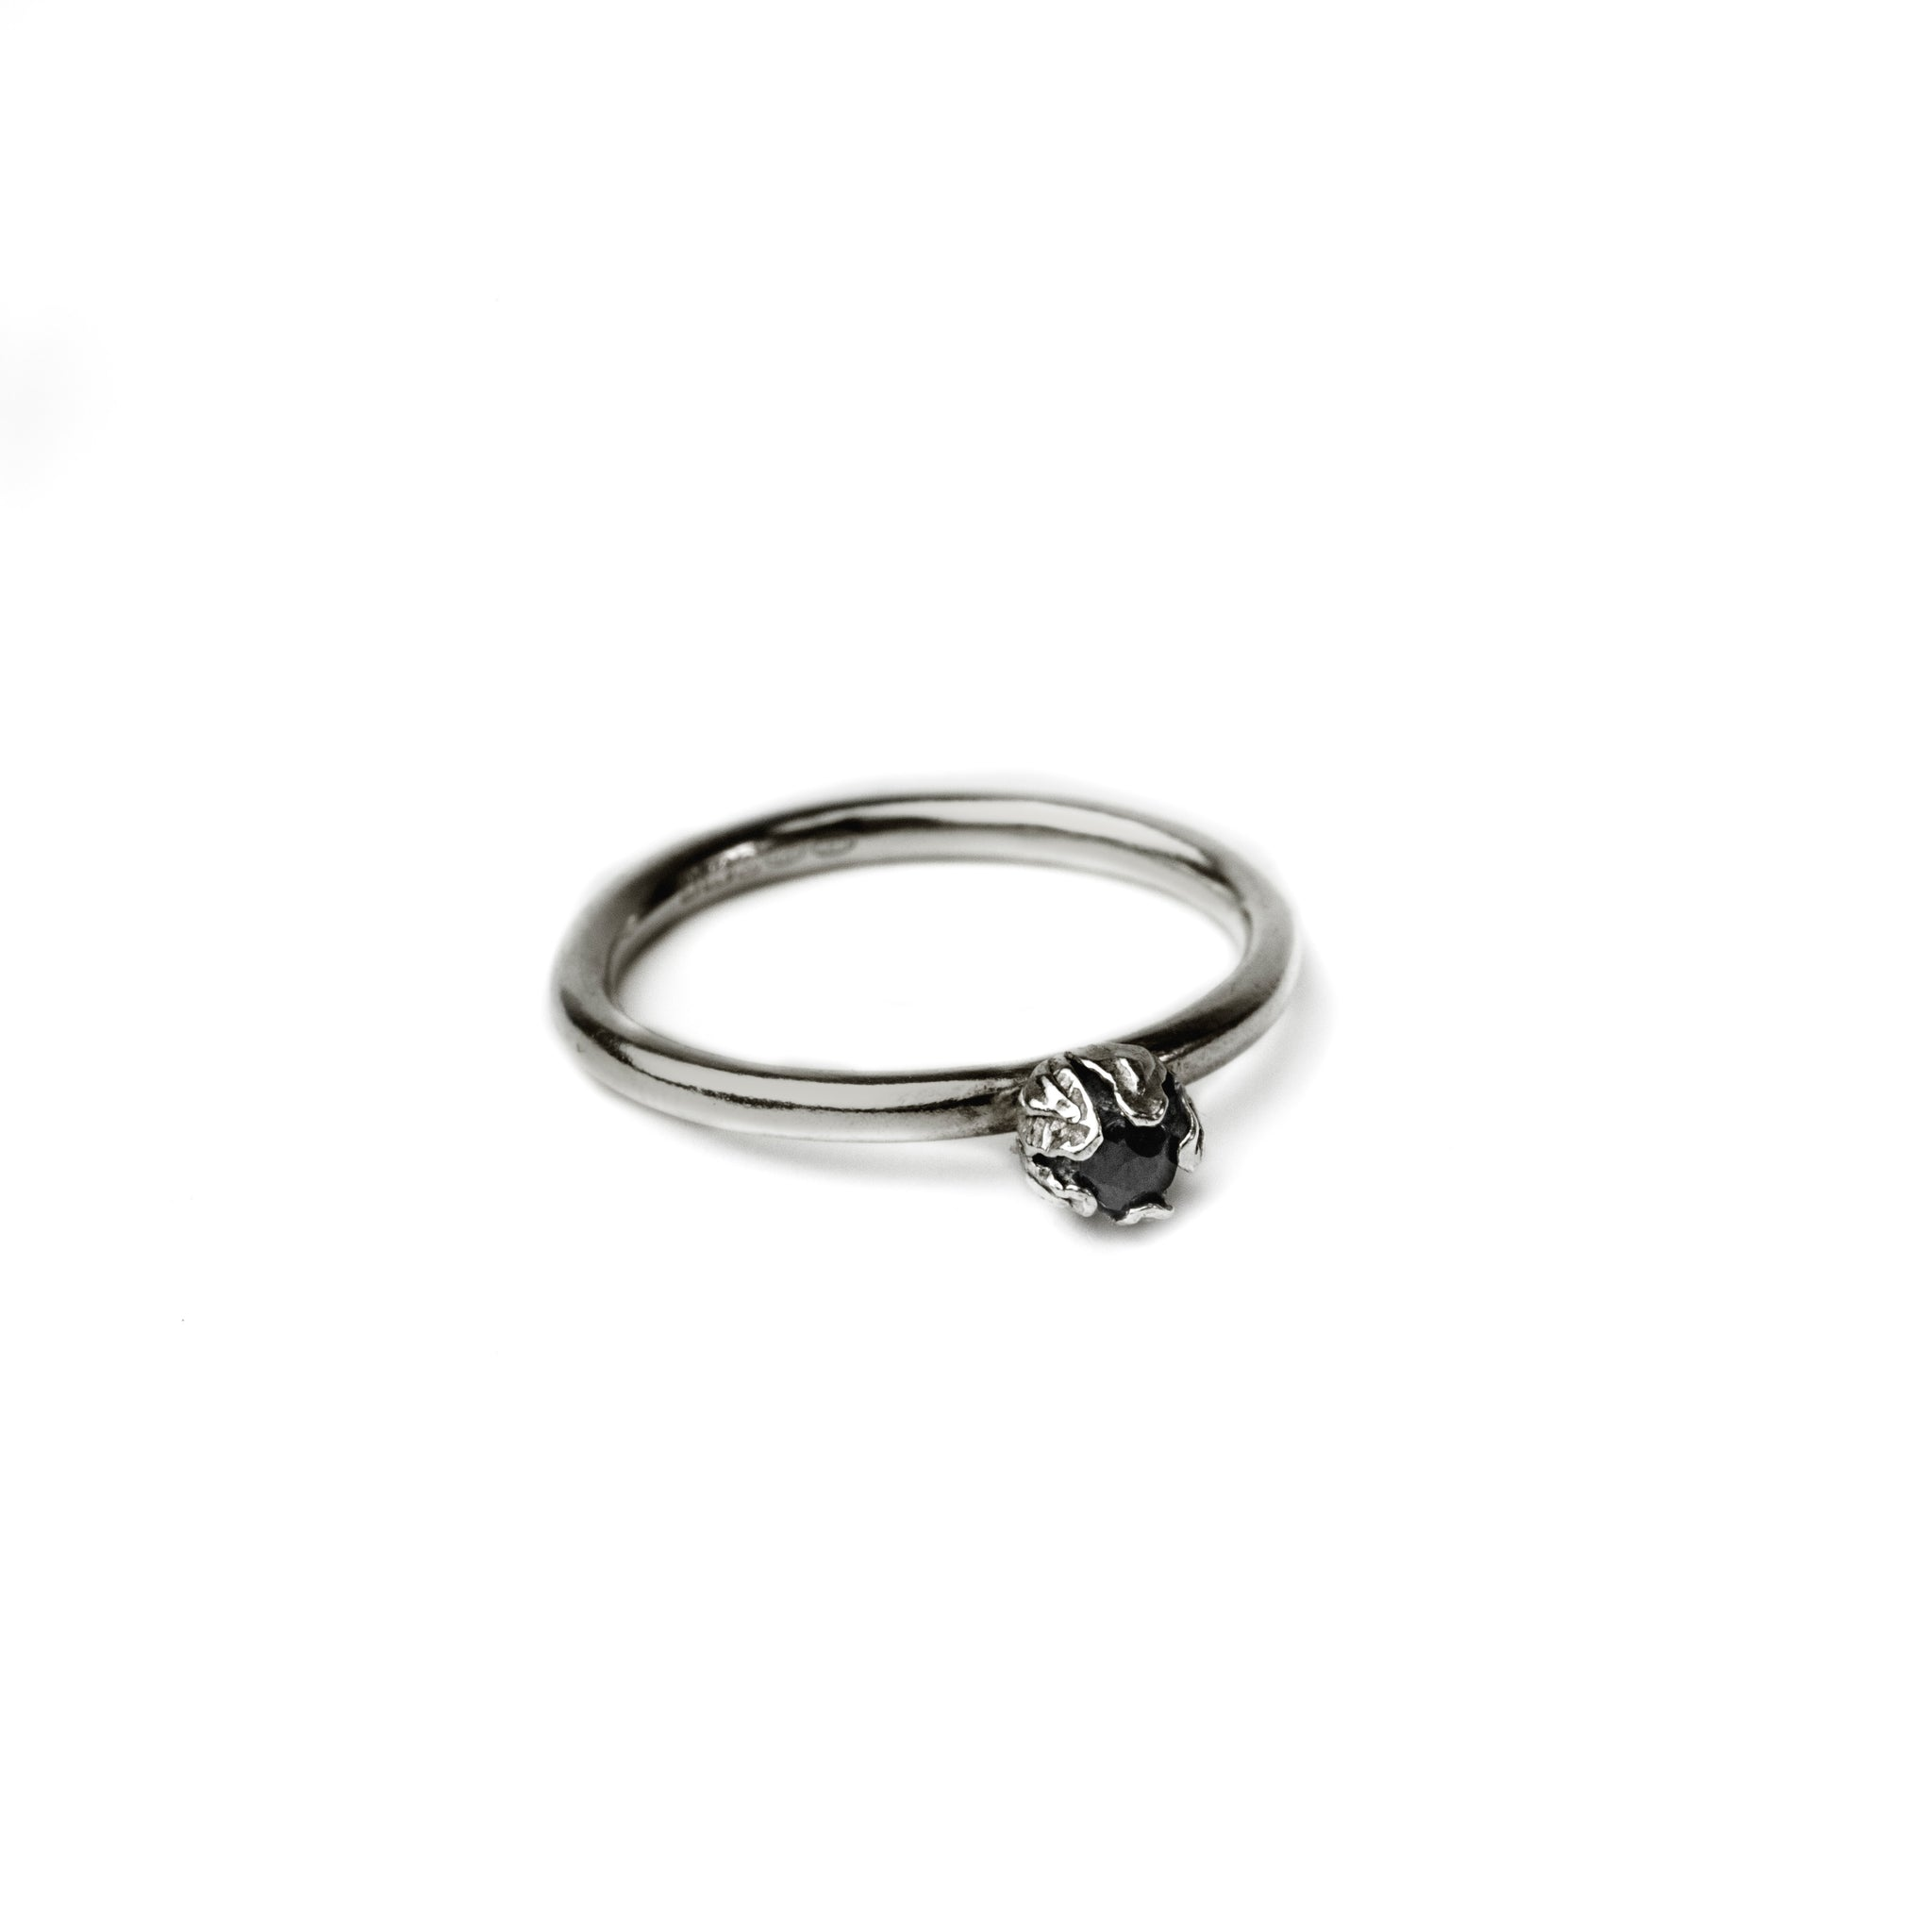 oxidised bud diamond ring on white background